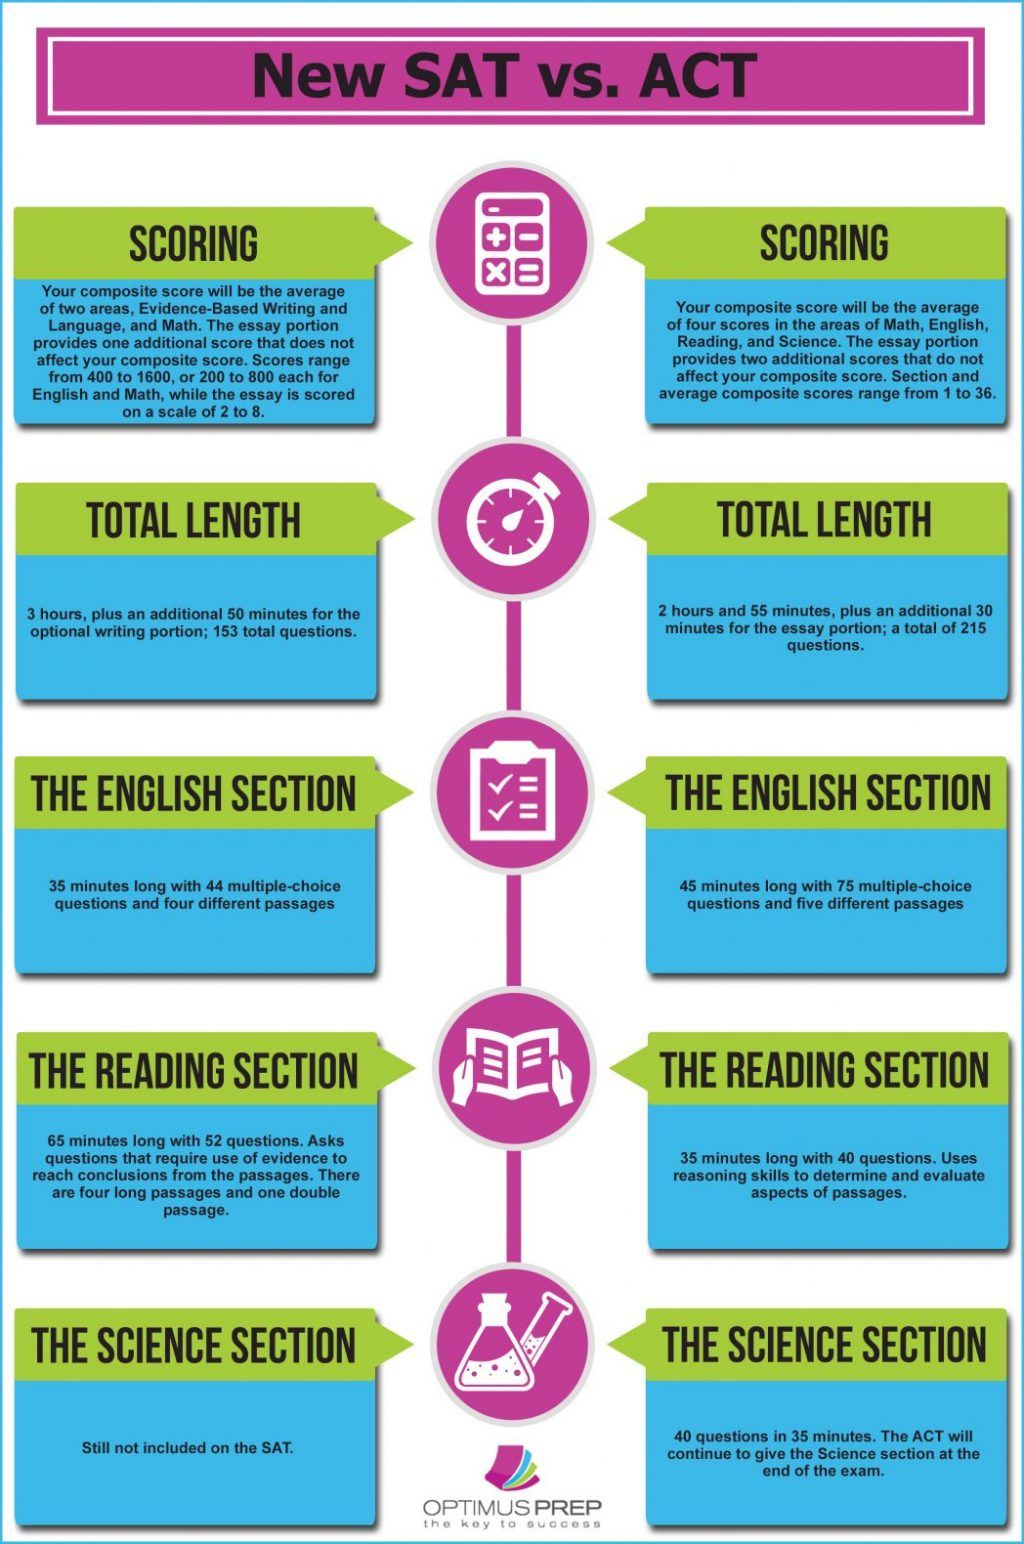 This Infographic Compares The New Sat Test Format Vs Act Math - Free Isee Practice Test Printable